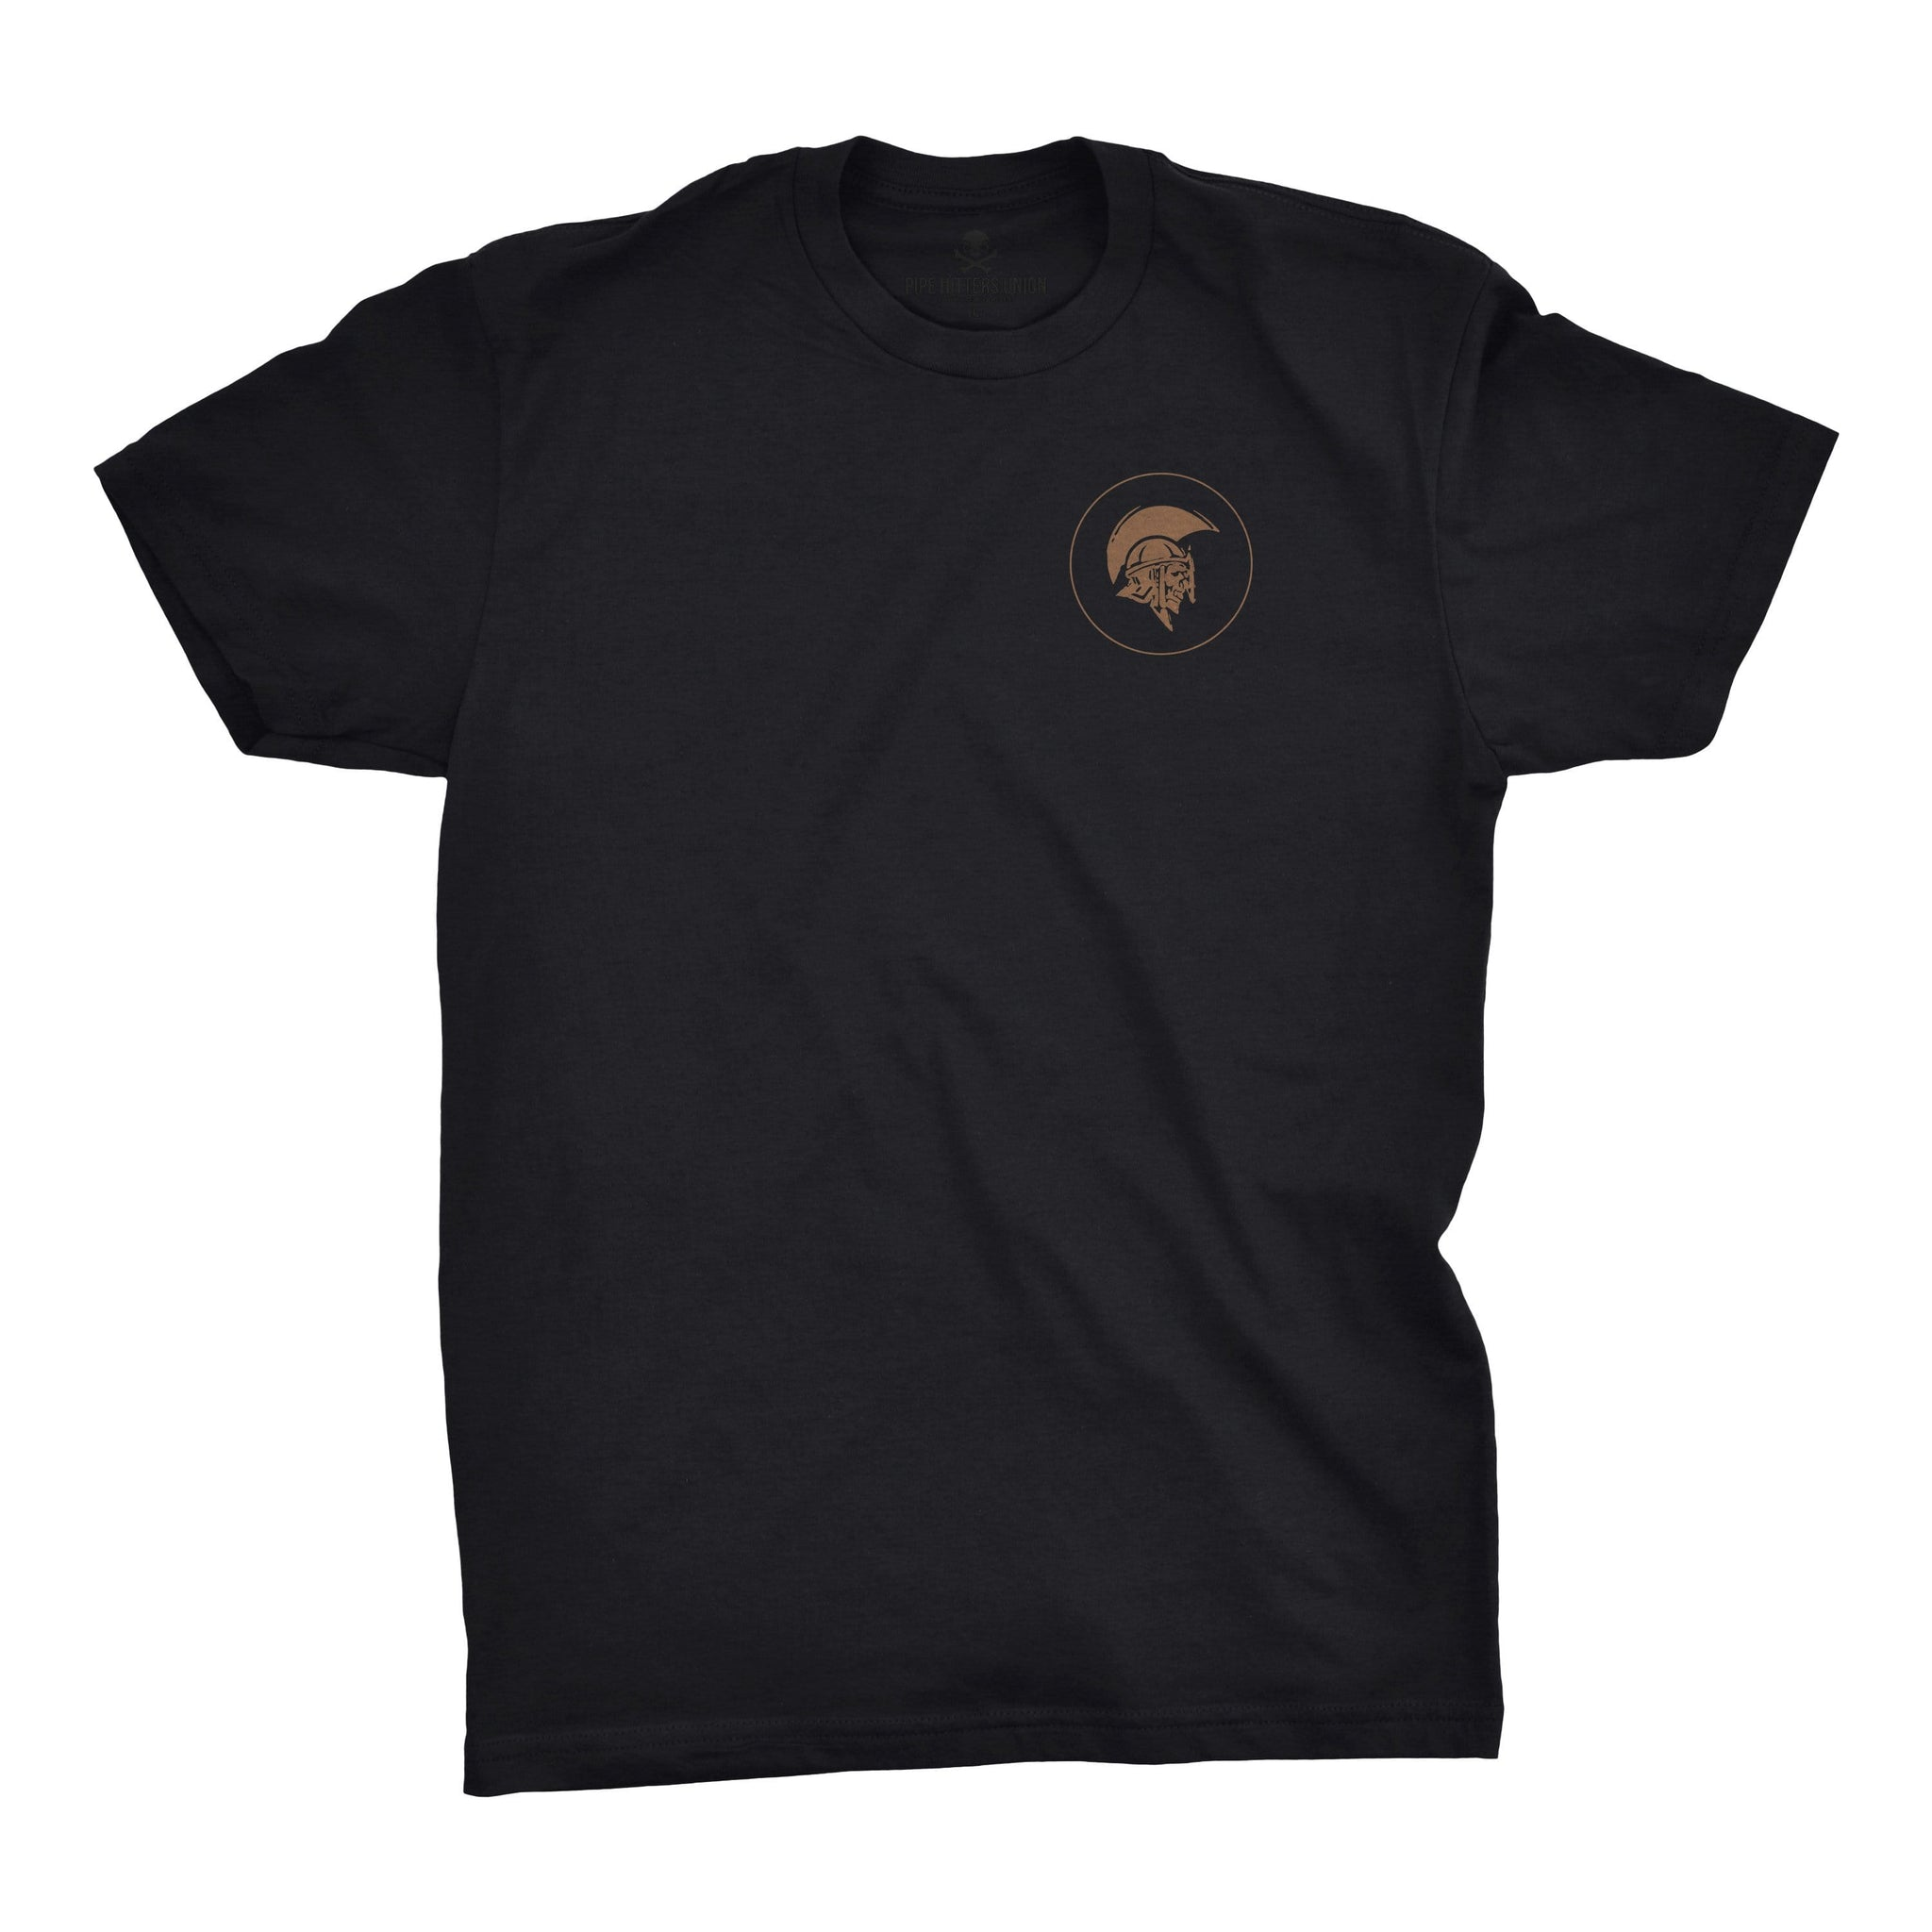 PHUMC Centurions Chapter Tee - Black - T-Shirts - Pipe Hitters Union